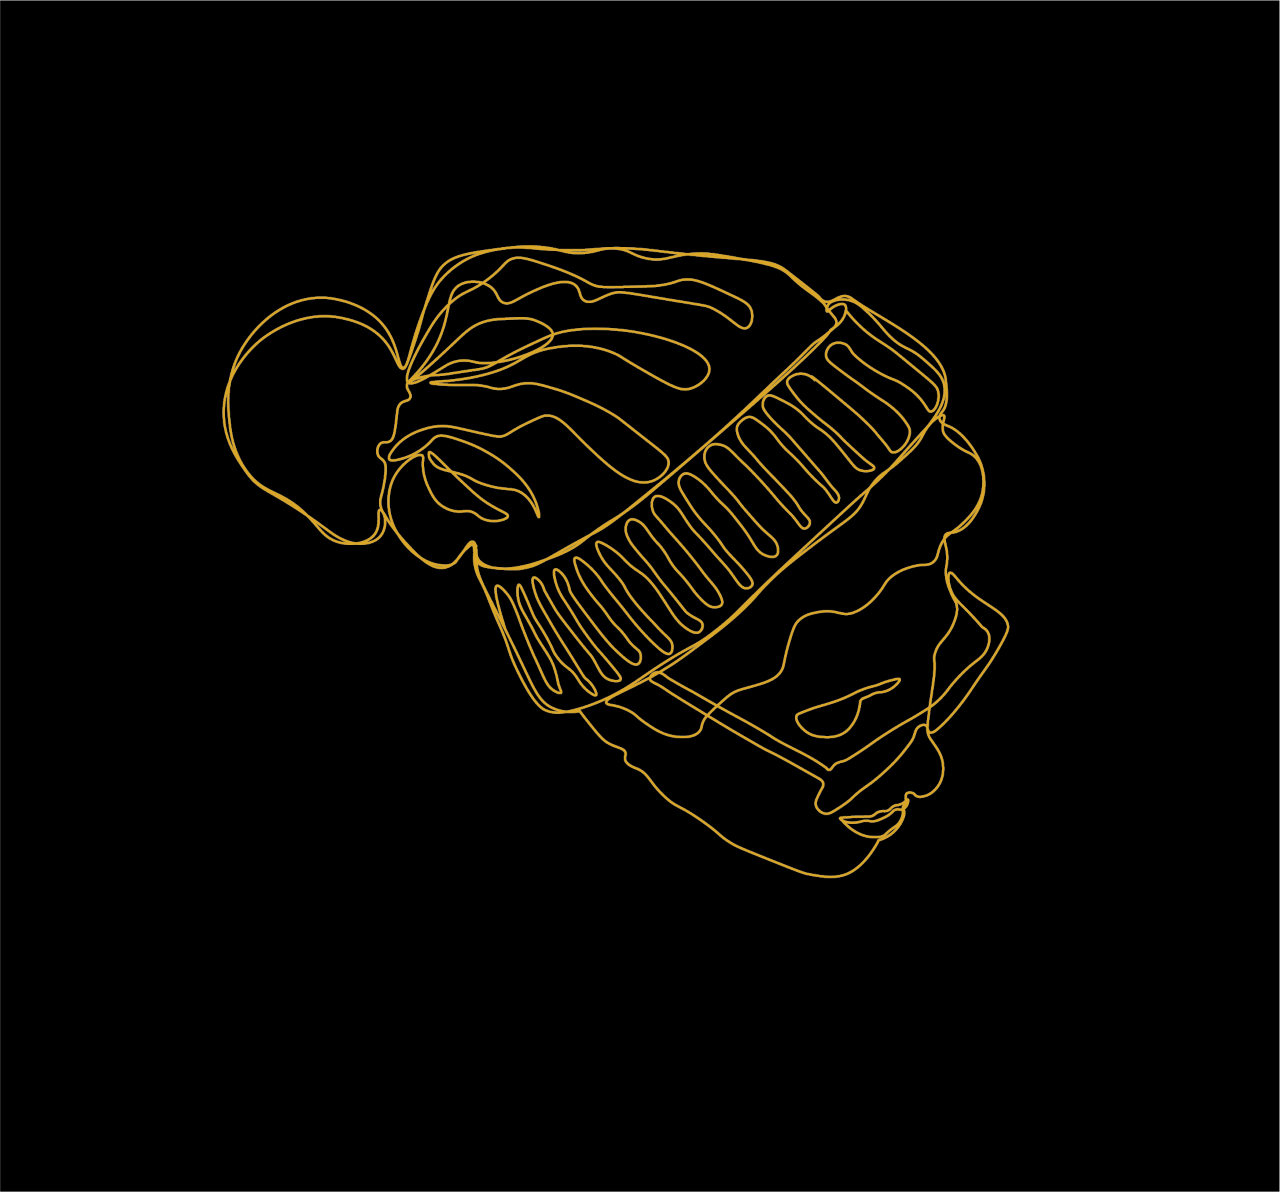 Black background with a gold line drawing of a female with glasses wearing a beanie with Pom-Pom